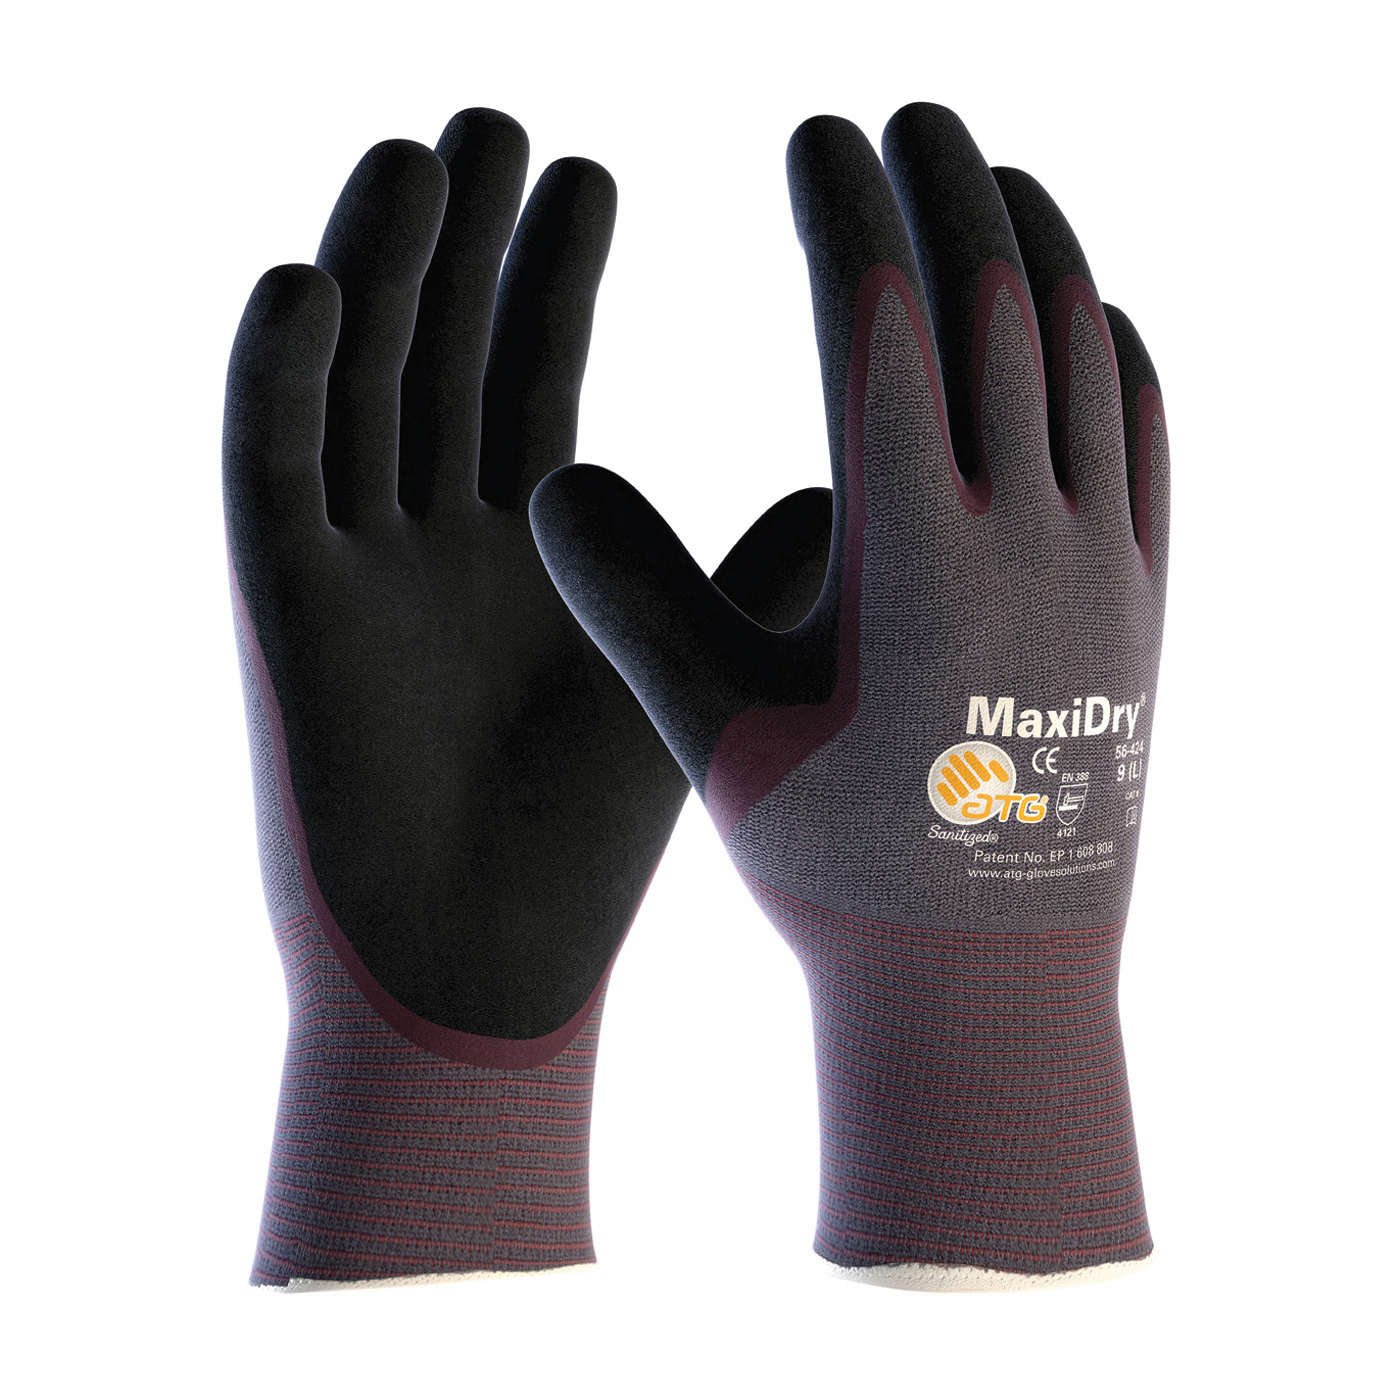 ATG® MaxiDry® 56-424/XS High Performance General Purpose Gloves, Coated, XS, Nylon Palm, Nylon, Black/Purple, Continuous Knit Wrist Cuff, Nitrile Coating, Resists: Abrasion, Cut, Puncture and Tear, Nylon Lining, Seamless Knit